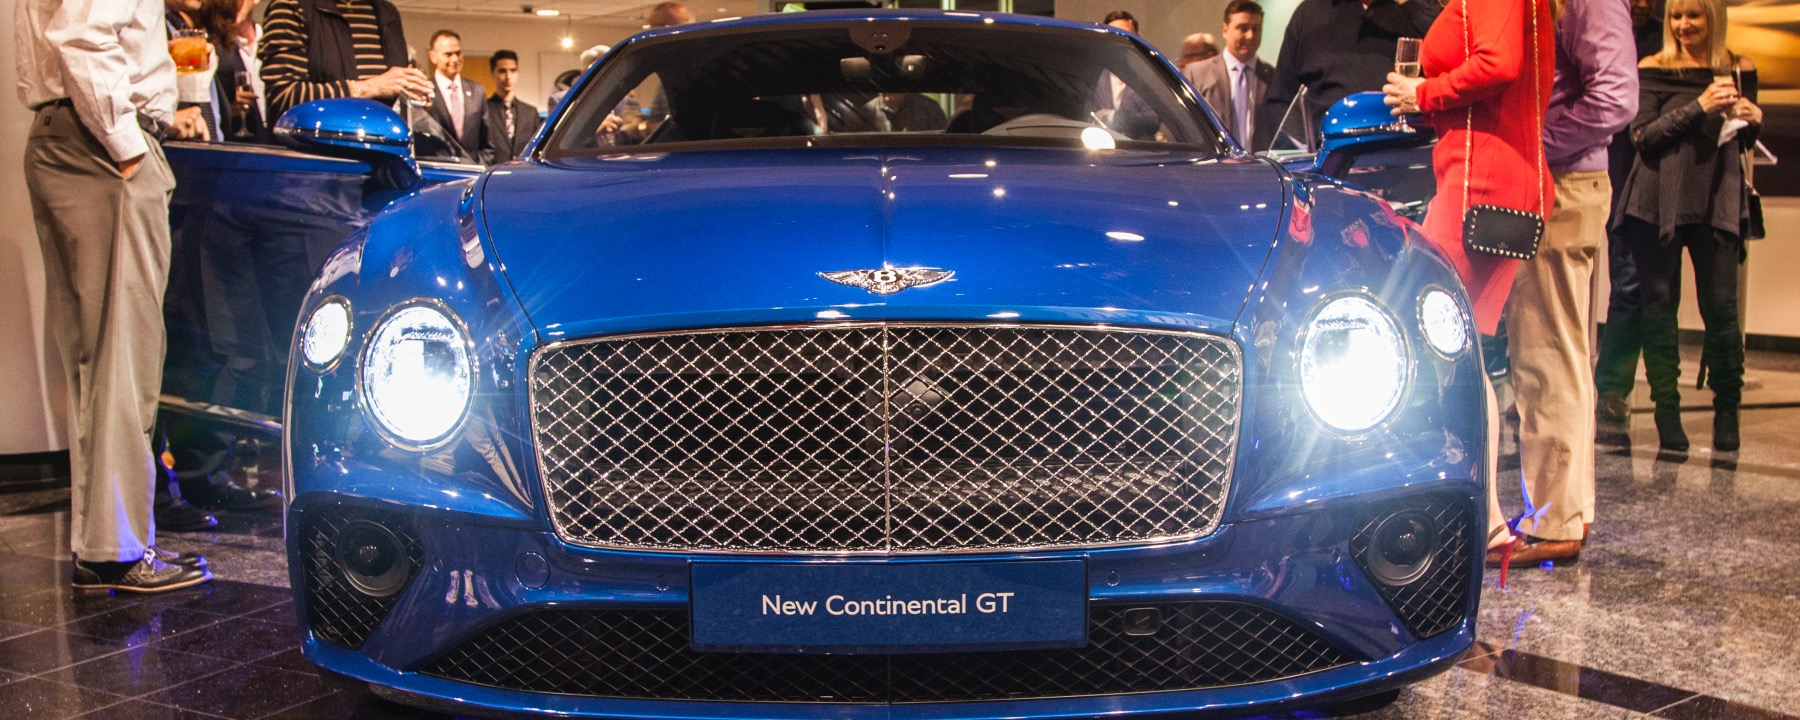 Bentley Rancho Mirage Celebrates The Bentley Continental